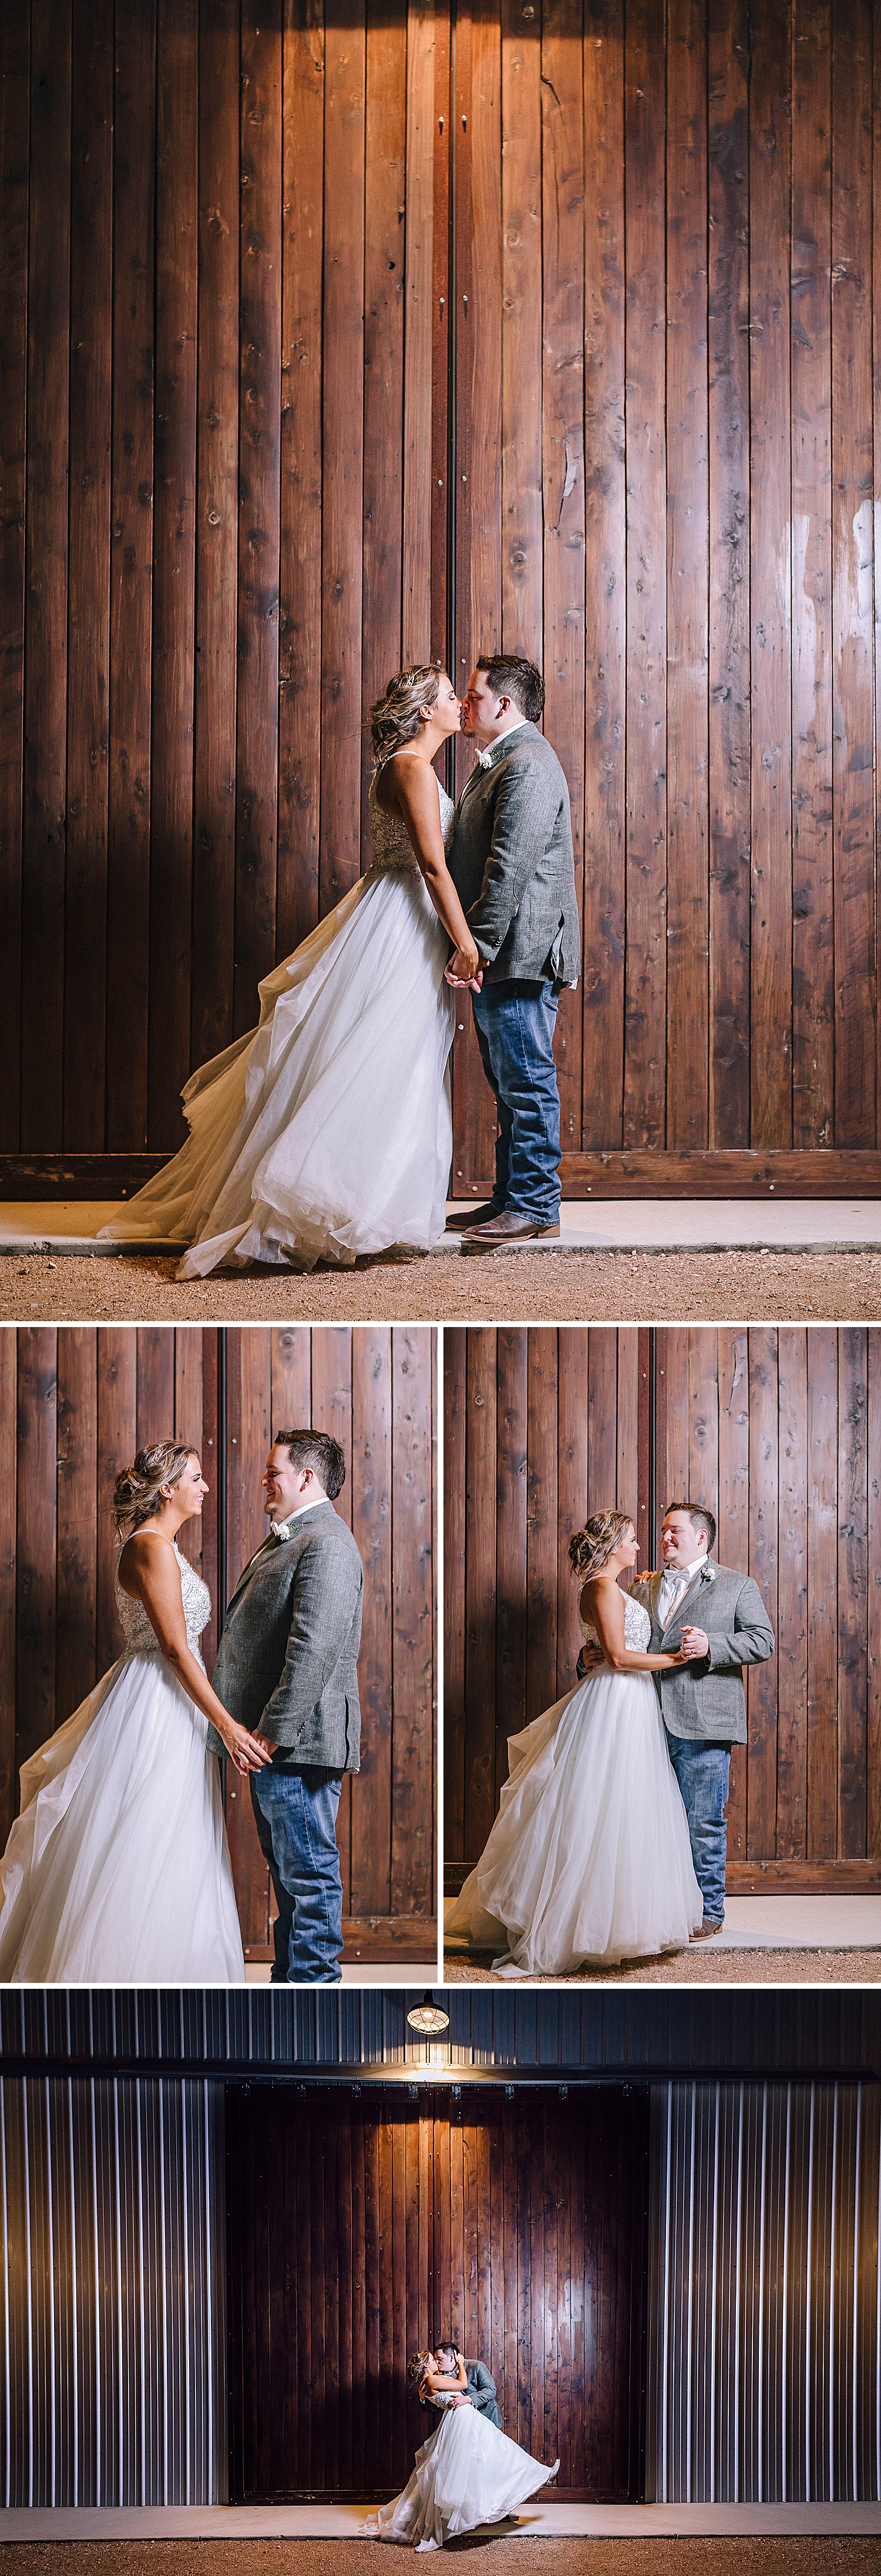 Allen-Farmhaus-New-Braunfels-Wedding-Carly-Barton-Photography_0080.jpg